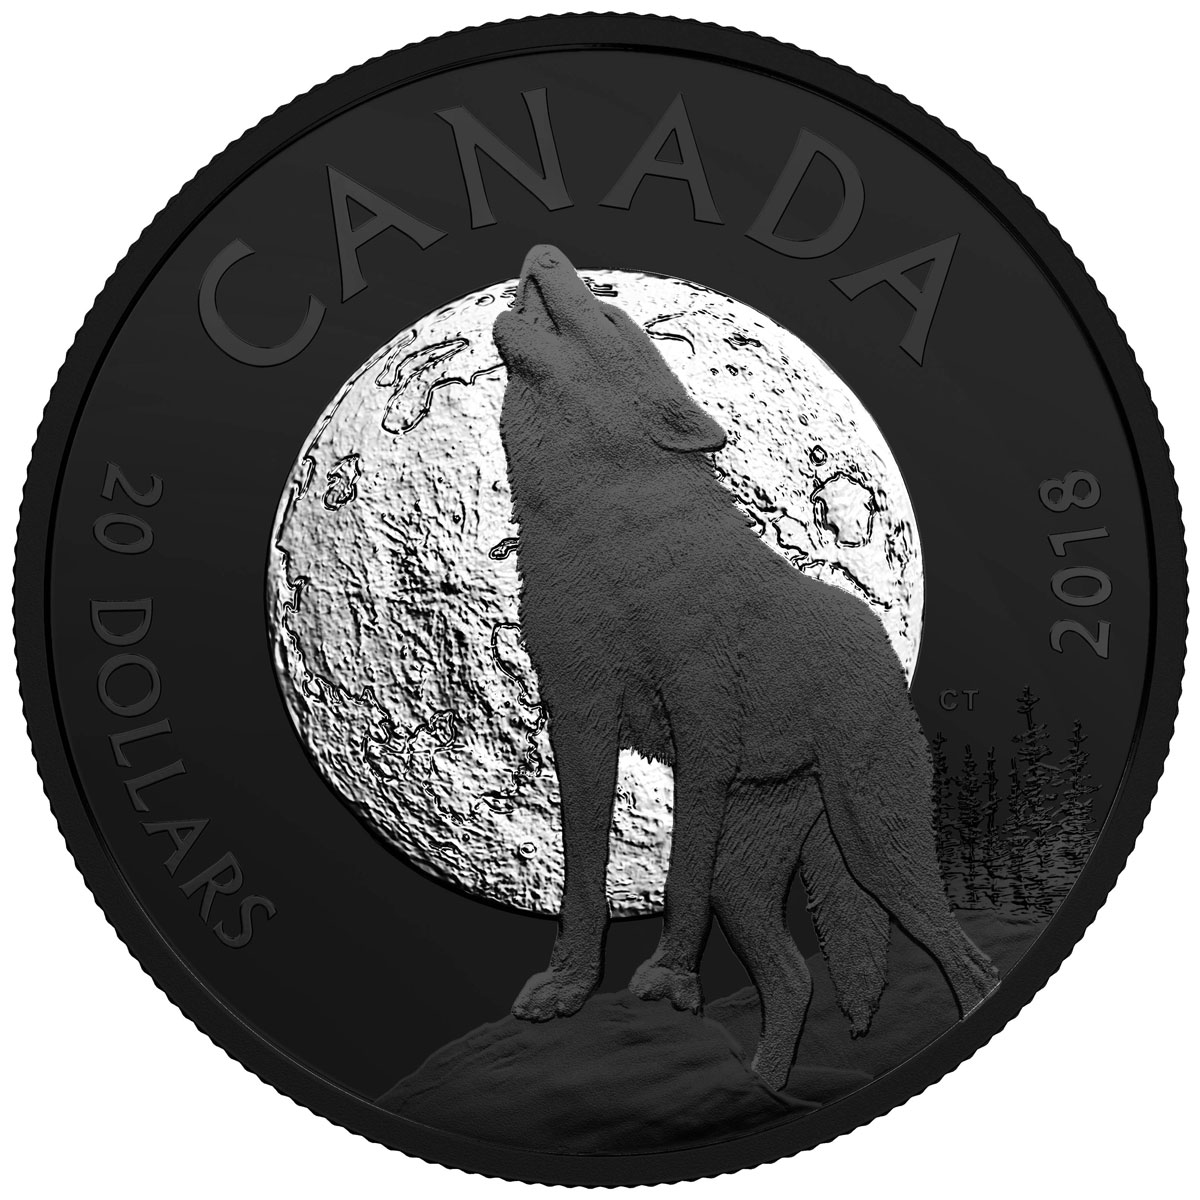 2018 Canada Nocturnal By Nature - The Howling Wolf 1 oz Black Rhodium Plated Silver Matte Proof $20 Coin GEM Proof OGP